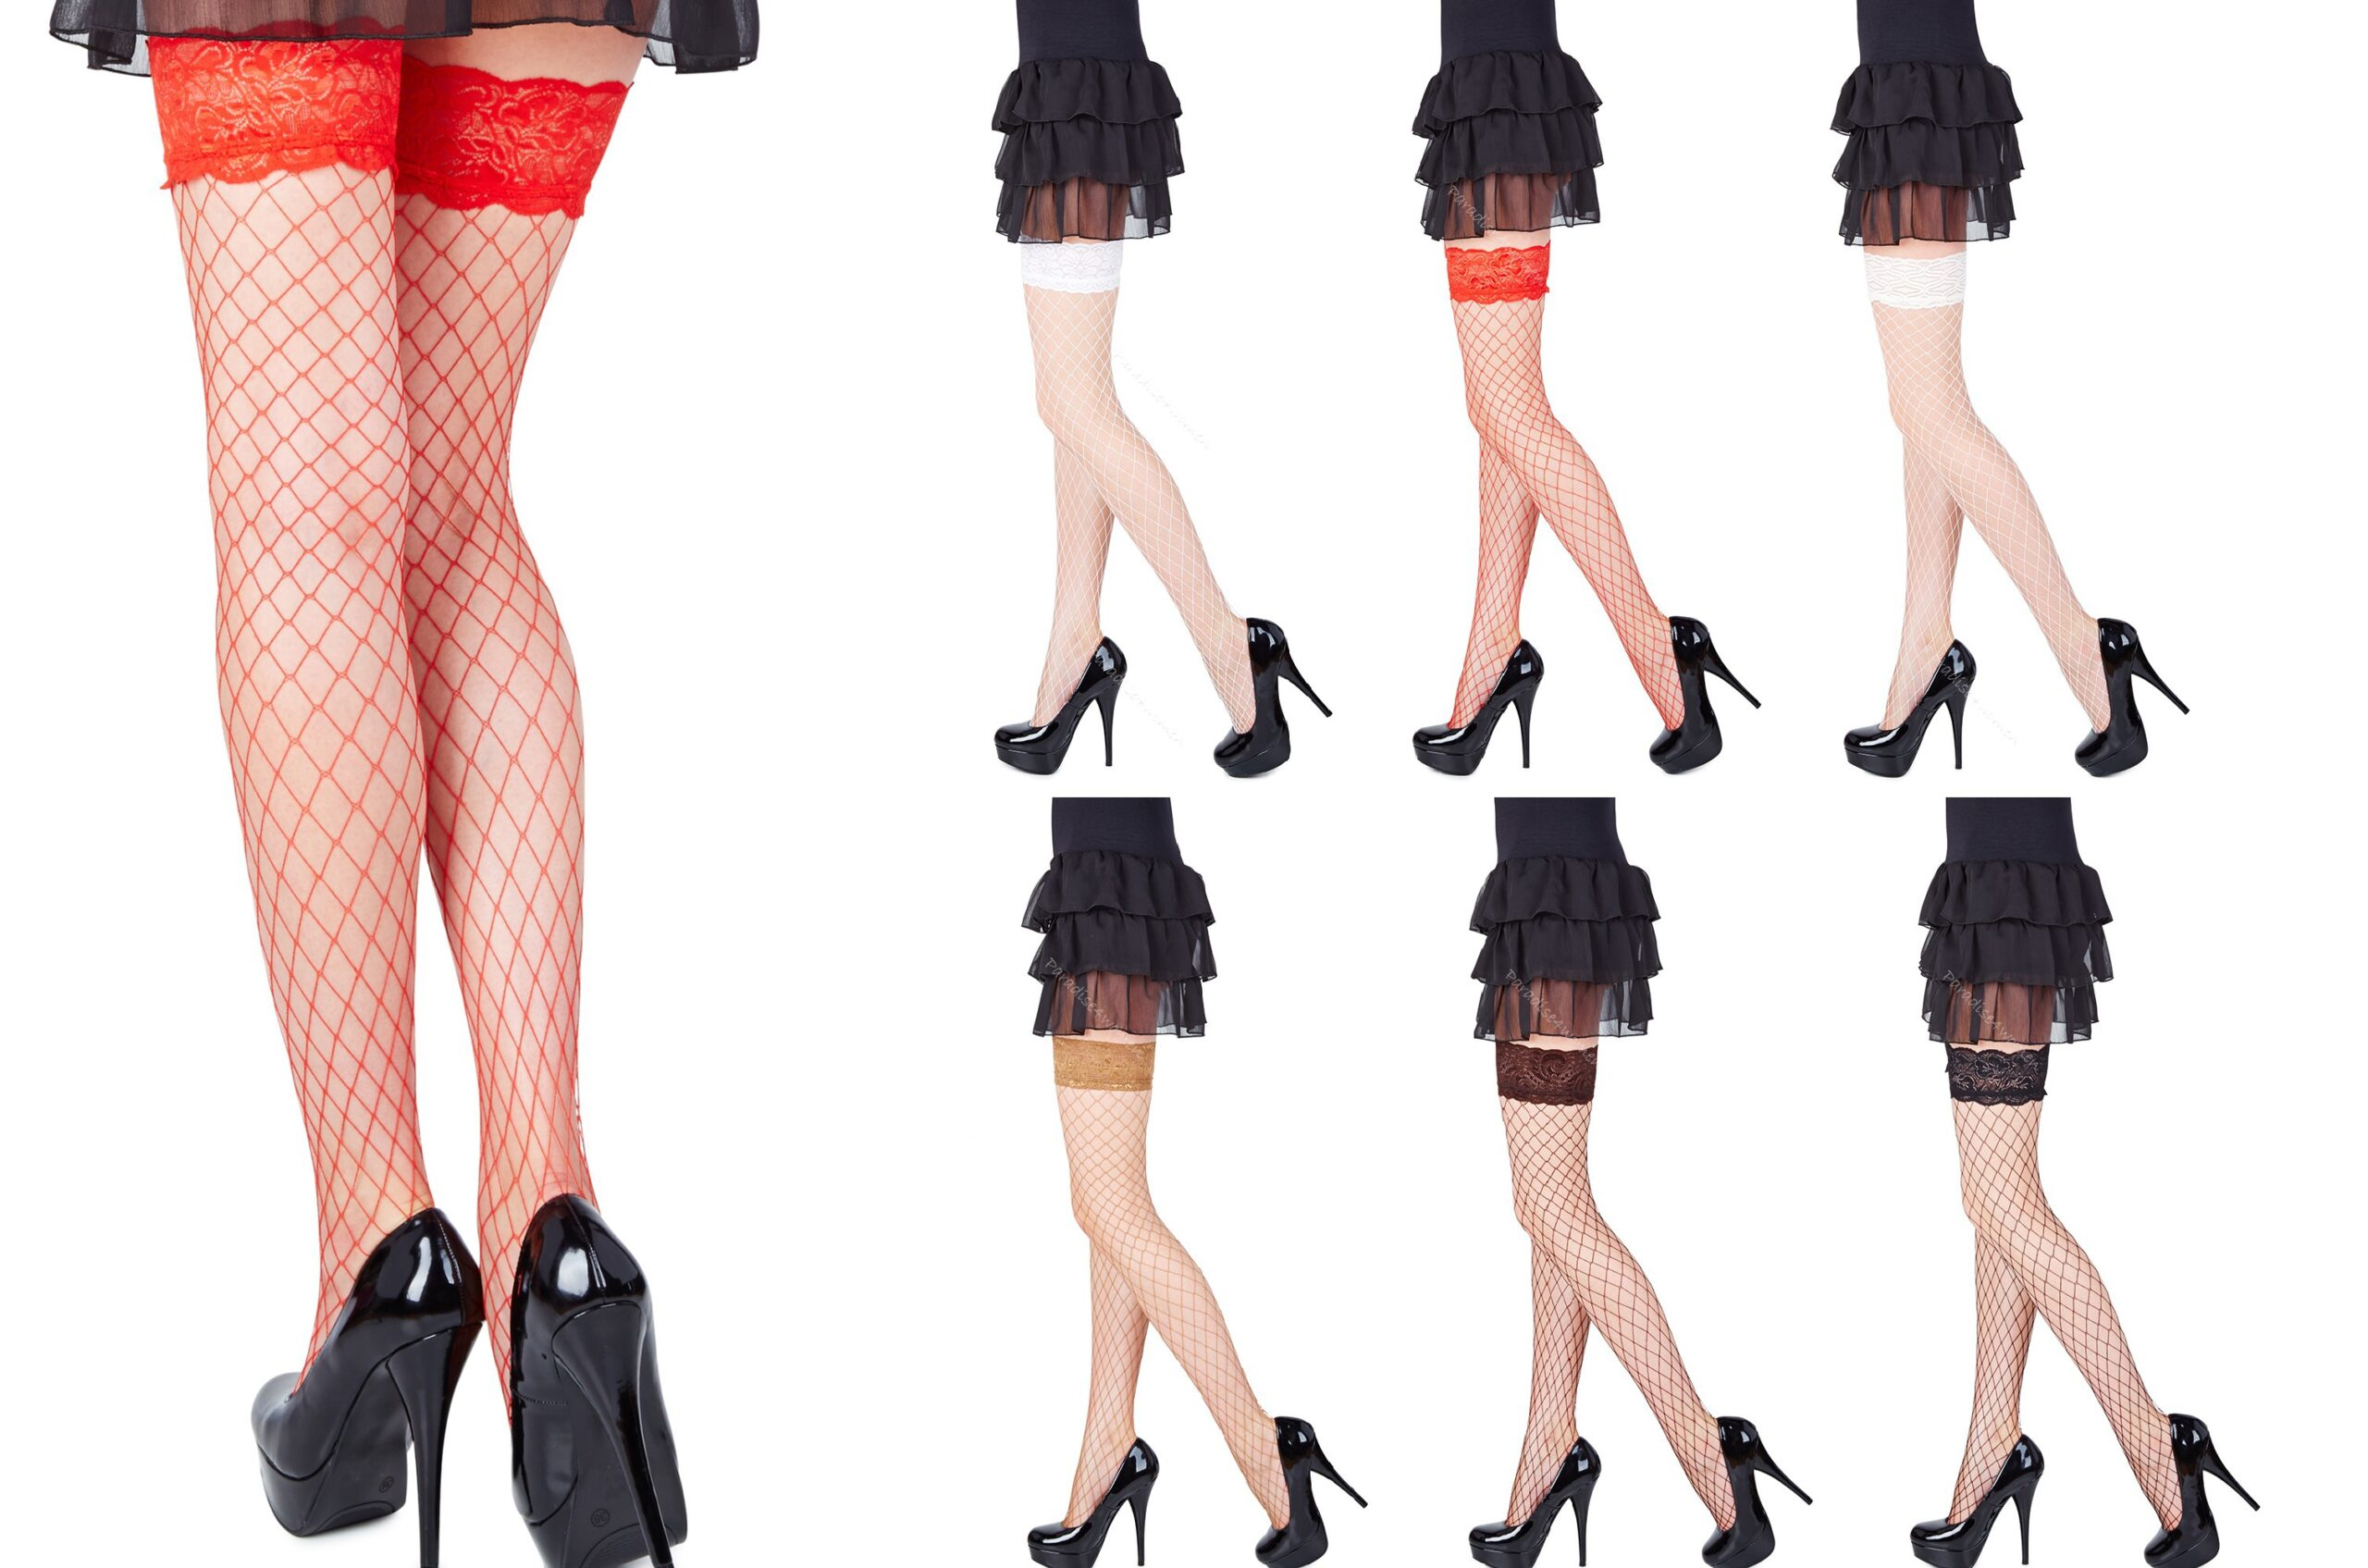 Sexy Lace Top Whale Net Hold Ups by Romartex -6 Various Colours ,Sizes S ,M , L, XL